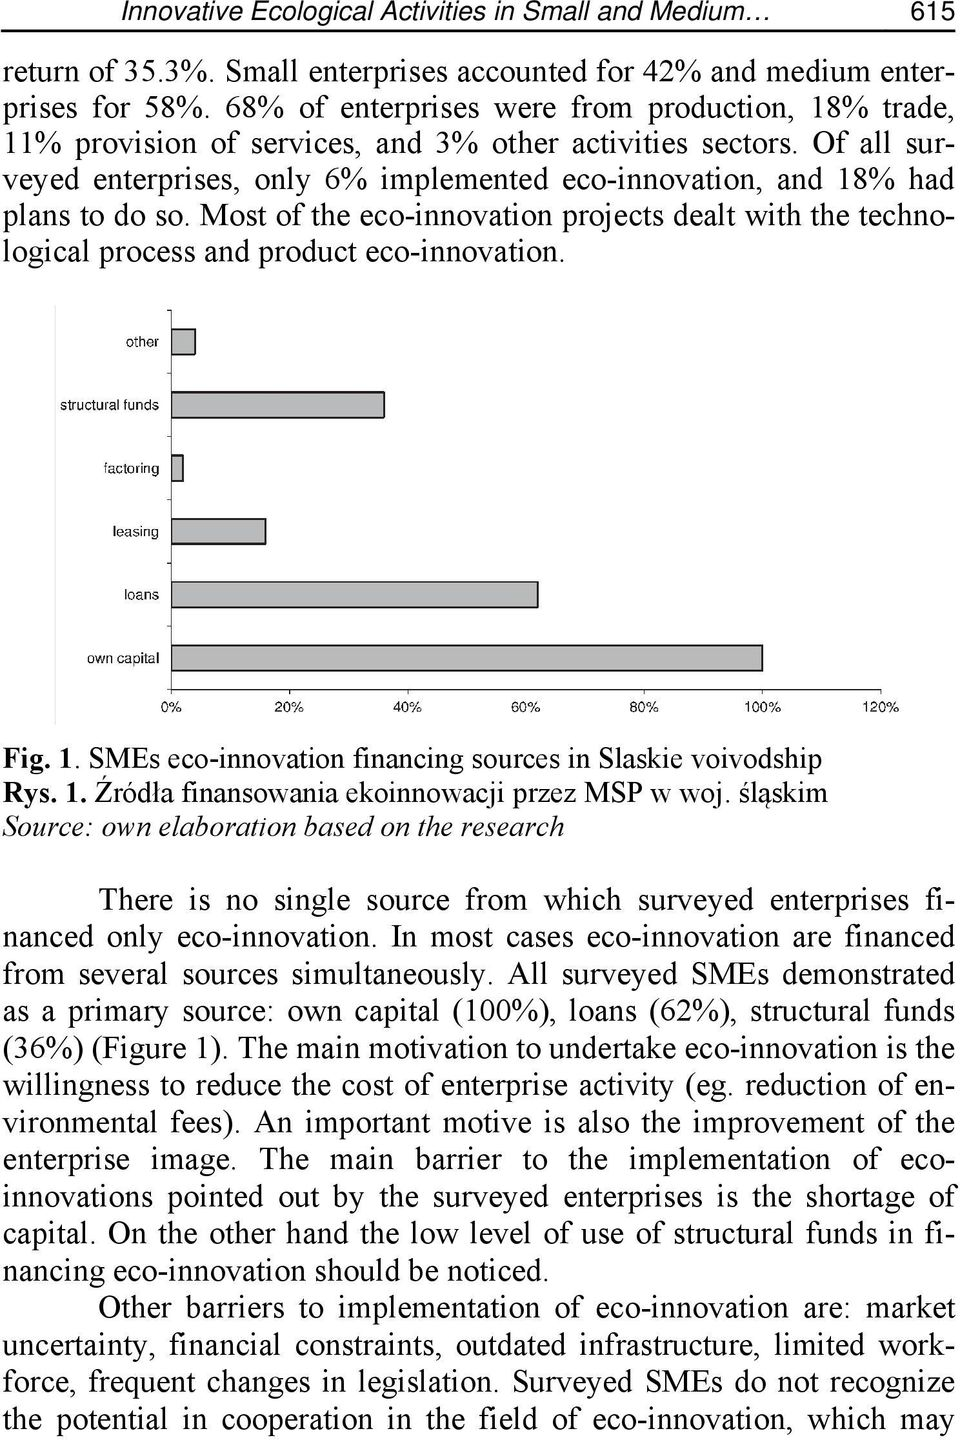 Of all surveyed enterprises, only 6% implemented eco-innovation, and 18% had plans to do so. Most of the eco-innovation projects dealt with the technological process and product eco-innovation. Fig.